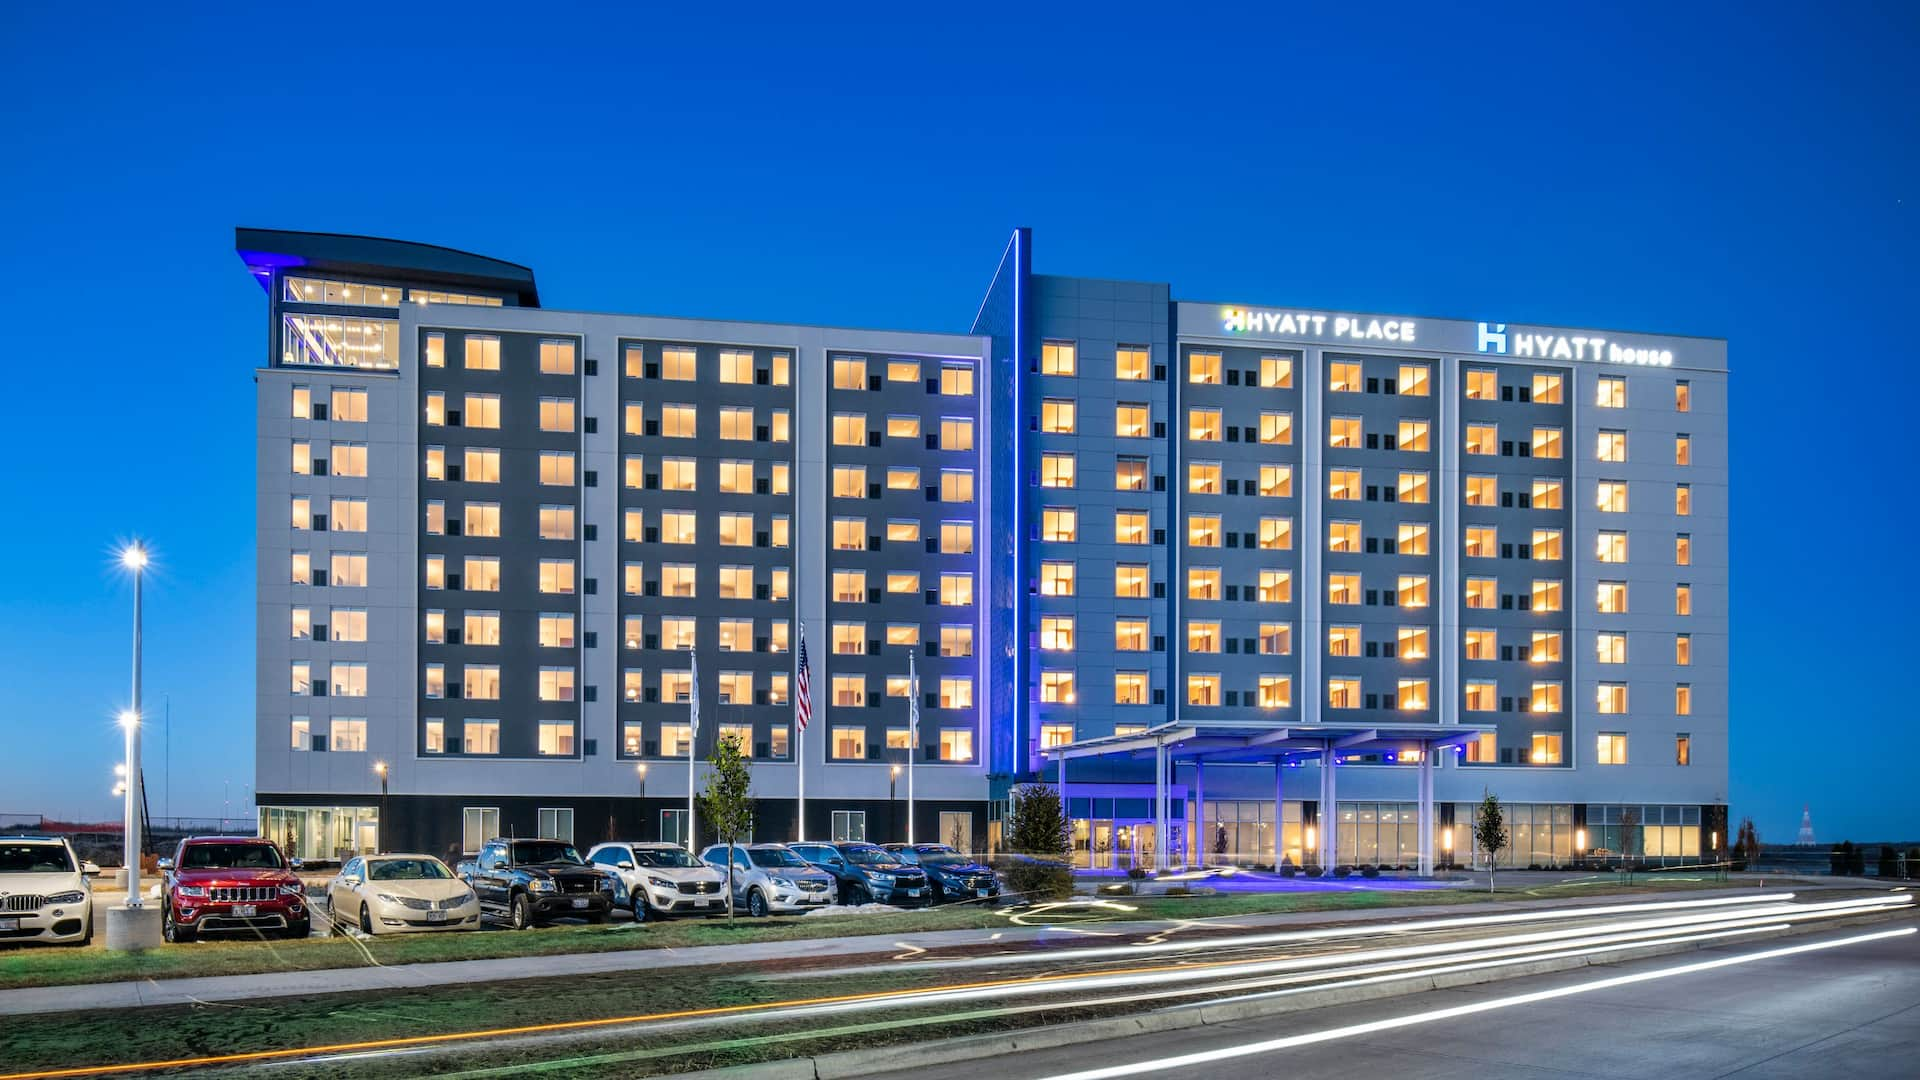 Hyatt House East Moline Exterior Night